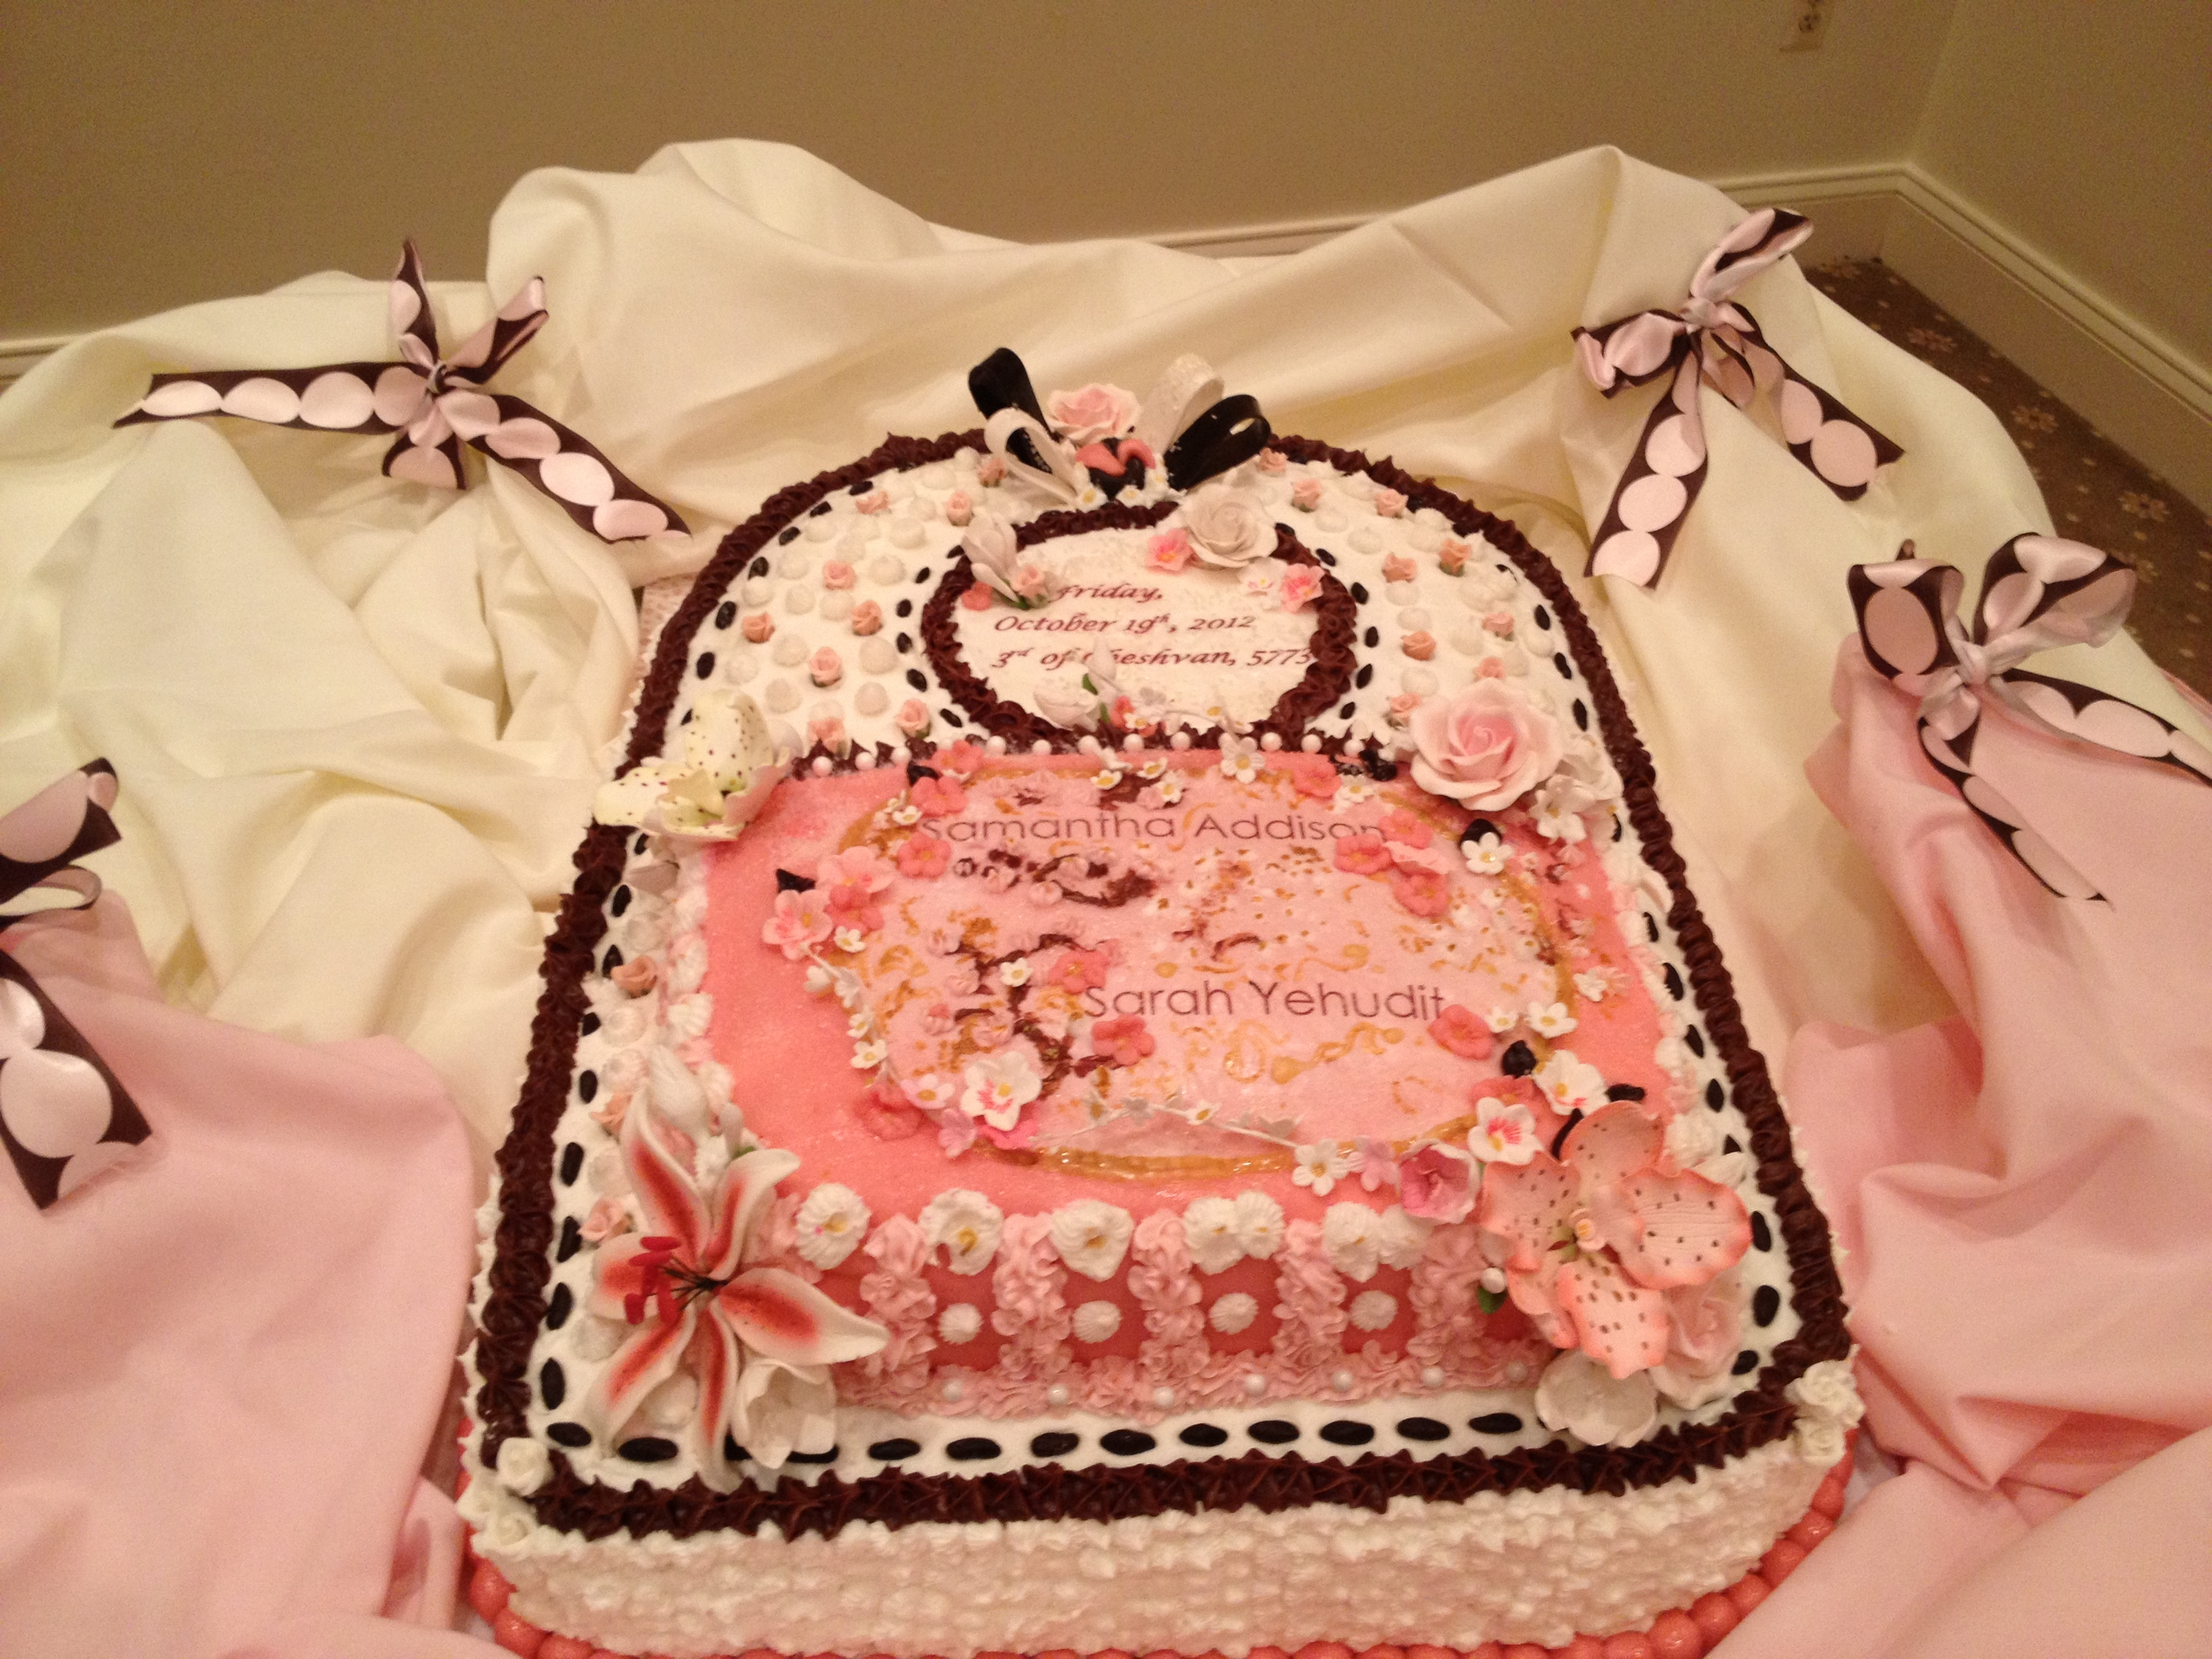 A Six Year Old Birthday Cake Recipe That Is Pink